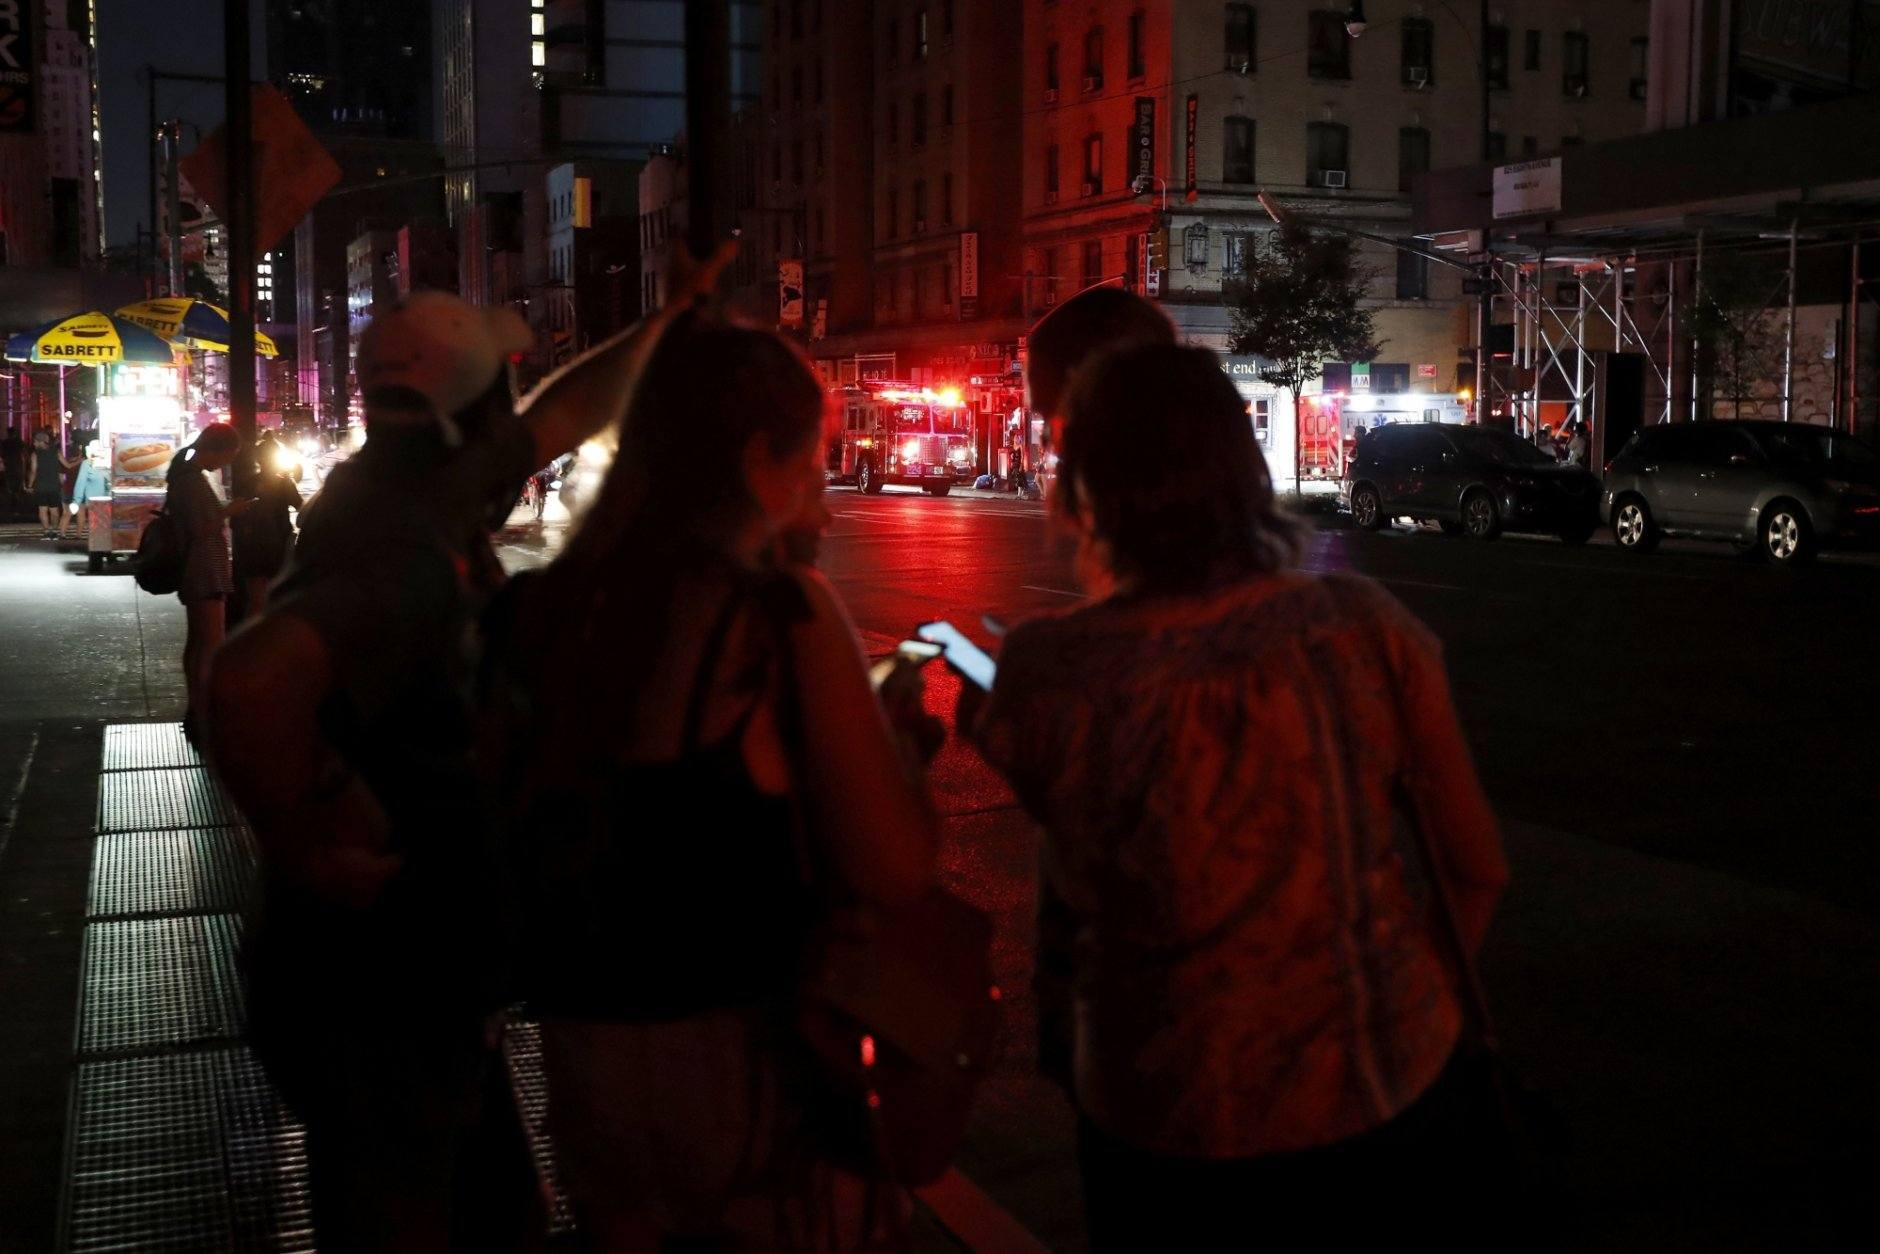 Pedestrians looks at their cellphones during a power outage in midtown Manhattan, Saturday, July 13, 2019, in New York. Authorities were scrambling to restore electricity to Manhattan following a power outage that knocked out Times Square's towering electronic screens and darkened marquees in the theater district and left businesses without electricity, elevators stuck and subway cars stalled. (AP Photo/Michael Owens)